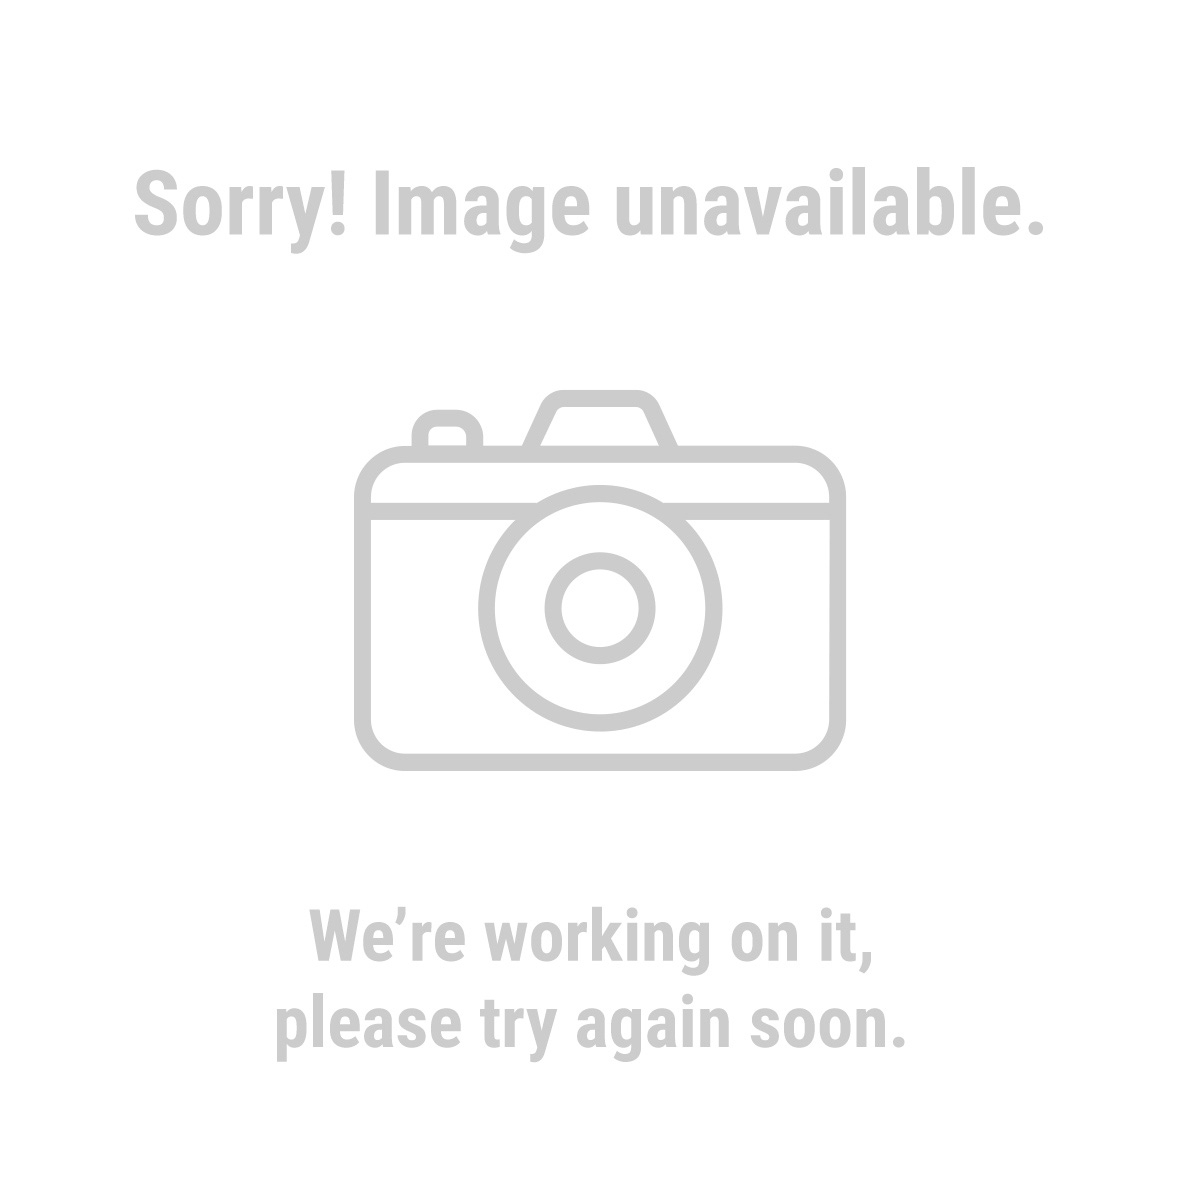 Haul-Master 93227 Red Clearance Marker Lamps, Pair